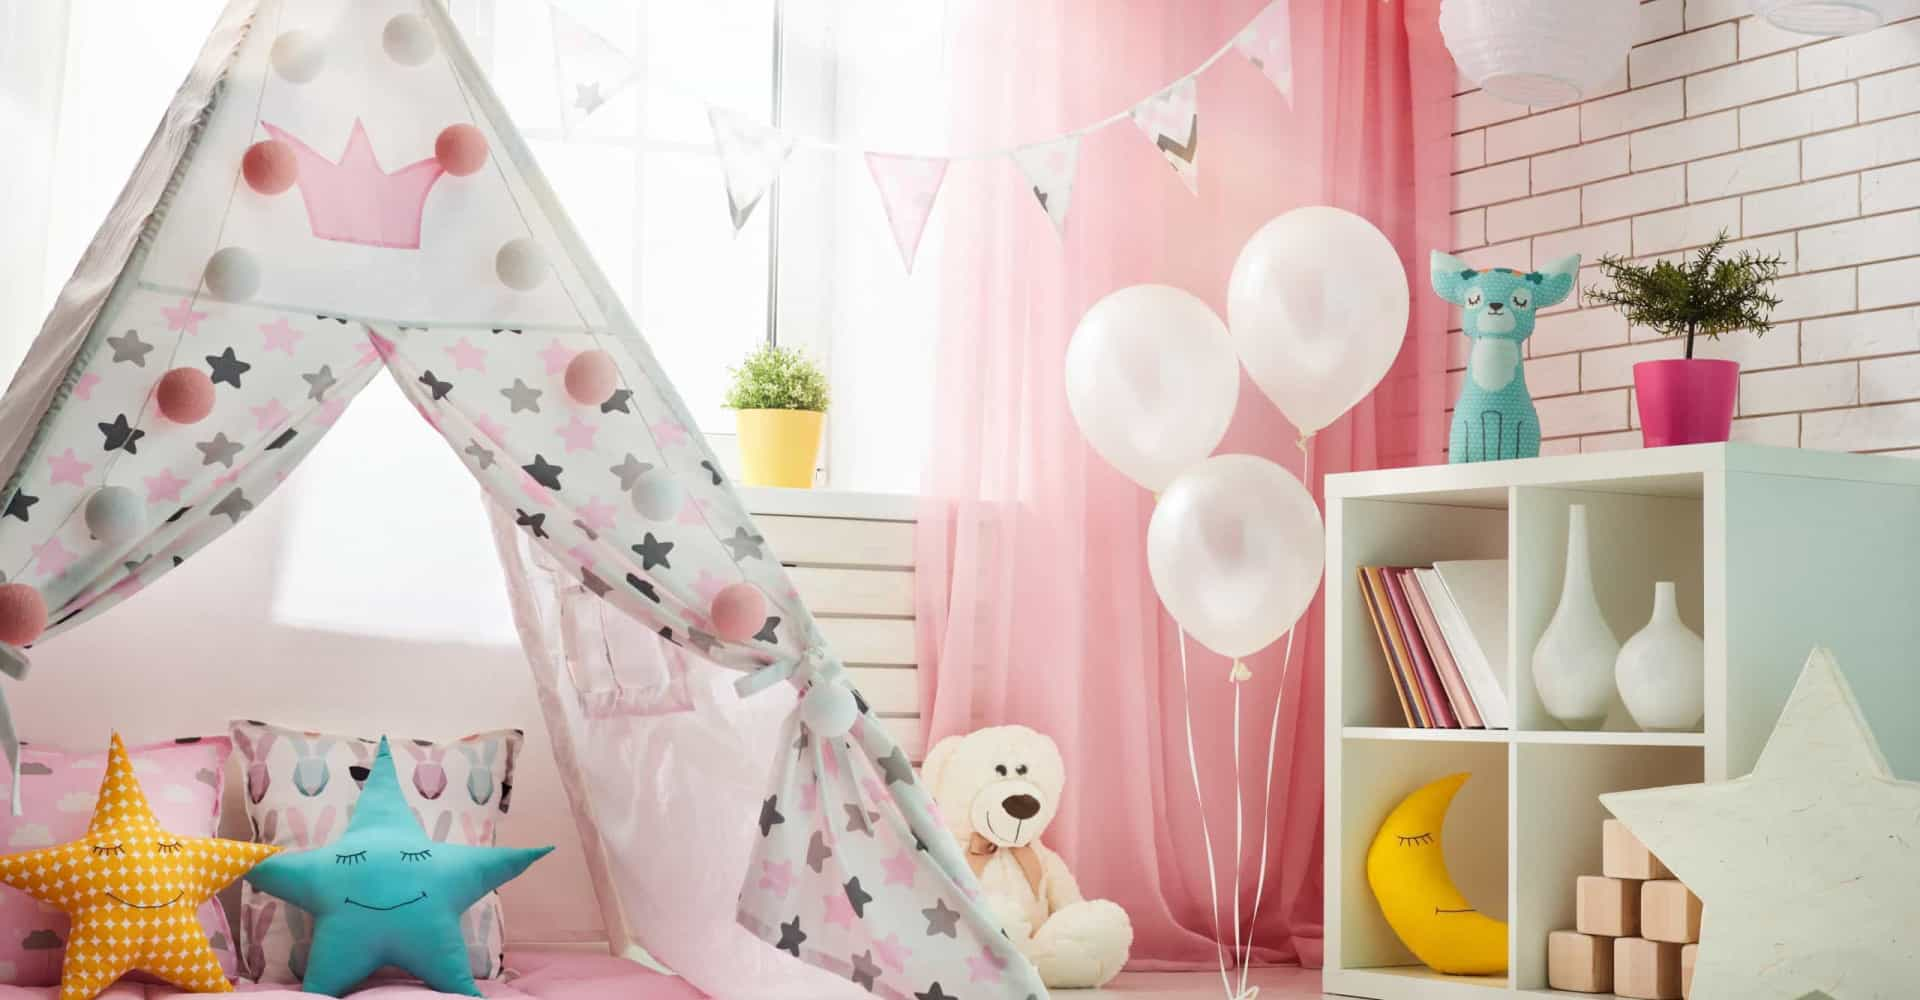 Fun ways to liven up your kid's room!